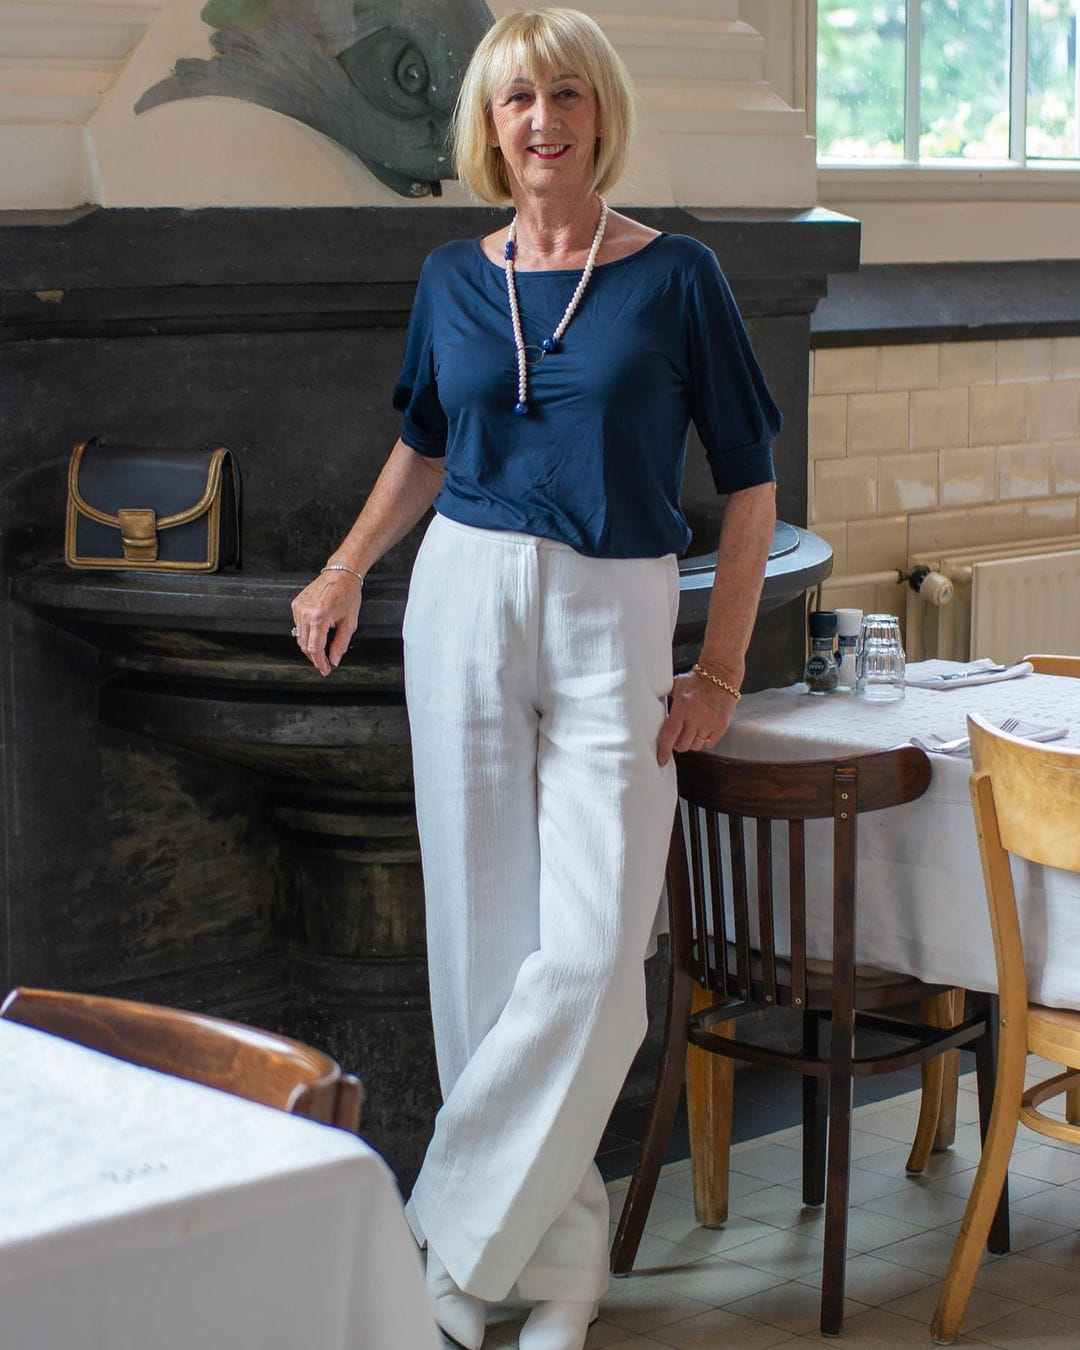 Greetje in wide leg pants and a navy top | 40plusstyle.com